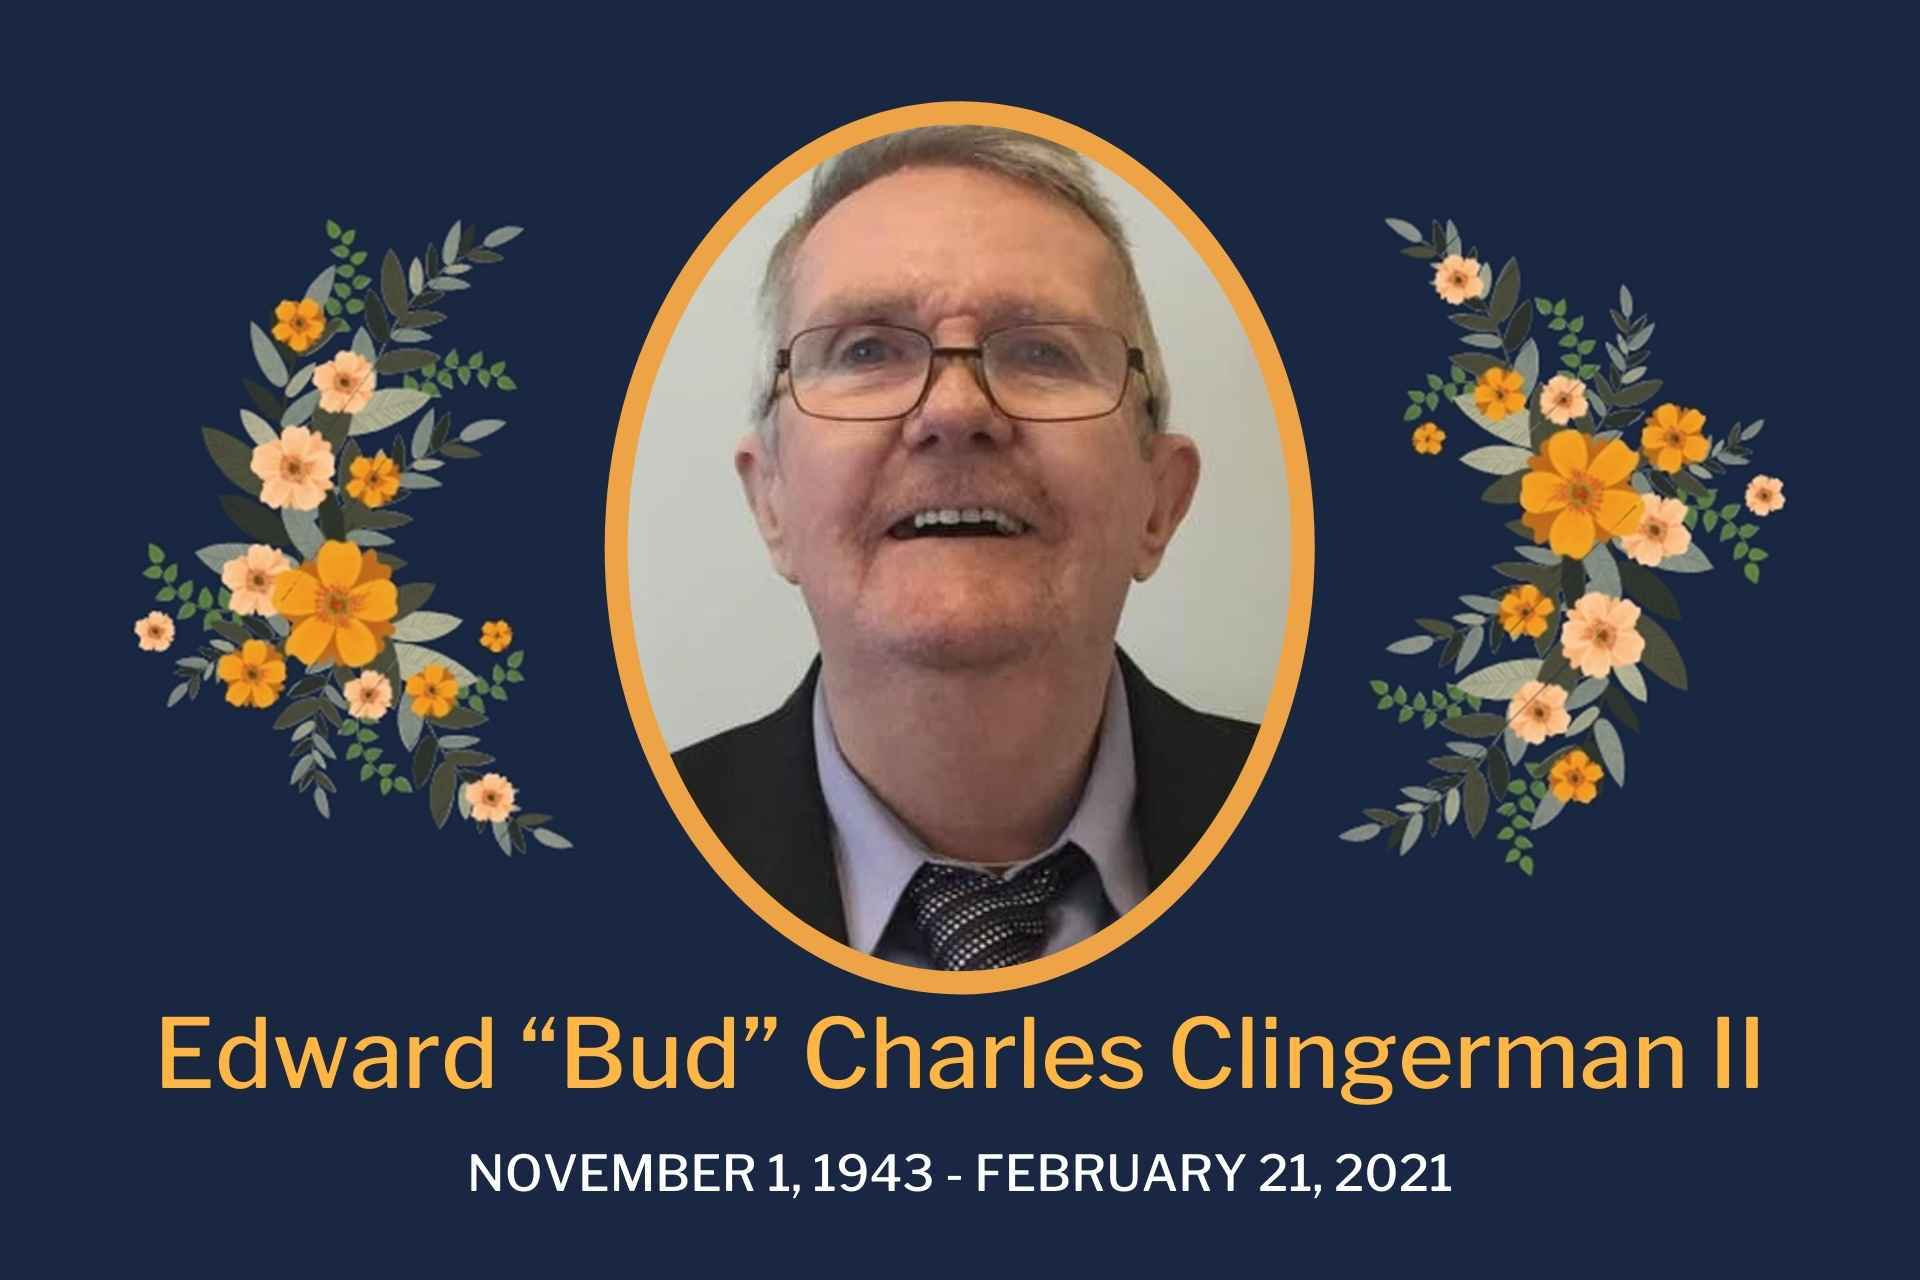 """Edward """"Bud"""" Charles Clingerman, II, age 77, of Volga, WV, died Sunday, February 21, 2021, at his caregiver's house in Roanoke, WV. He was born November 1, 1943, in Randolph County, WV, a son of the late Edward Charles Clingerman and Marie Daniels Ashe. On June 22, 1994, he married Terry Hicks Clingerman who survives of Volga. Also surviving are his sister-in-law, Therese Hicks of Jane, Lew, WV; caregivers, Michelle Jamison and Shelly Dawn's Personal Care Family of Roanoke, WV; special children, his girl Calee and his boys Charles and Phillip all of Roanoke; special friend, Robin Criss and staff at the Caring Manor of Buckhannon and nephews, Josh Hicks and James Fogg both of Jane Lew. In addition to his parents, he was preceded in death by his stepfather, John Ashe and former wife, Dorothy """"Dotty"""" Koon. Mr. Clingerman worked as a Rig Hand for Union Drilling and was a Baptist by Faith. He was a longtime supporter of the Hacker's Creek Coon Club and American Blue Gascon Assoc. He was a member of the BBCHA and wrote articles for Full Cry. He was a 35-year member of AA as well as a substance abuse counselor. The family would like to extend a special thank you to his caregivers Phil and Michelle Jamison and family. Friends will be received Saturday, February 27, 2021 from 11 AM to 1 PM at the Poling-St. Clair Funeral Home. A funeral service will be held 1 PM Saturday at the funeral home with Pastor Chris Cosner officiating. Burial will follow in the Lanham Cemetery in Queens, WV. Online condolences may be made to the family at www.polingstclair.com. Poling-St. Clair Funeral Home is in charge of the arrangements."""